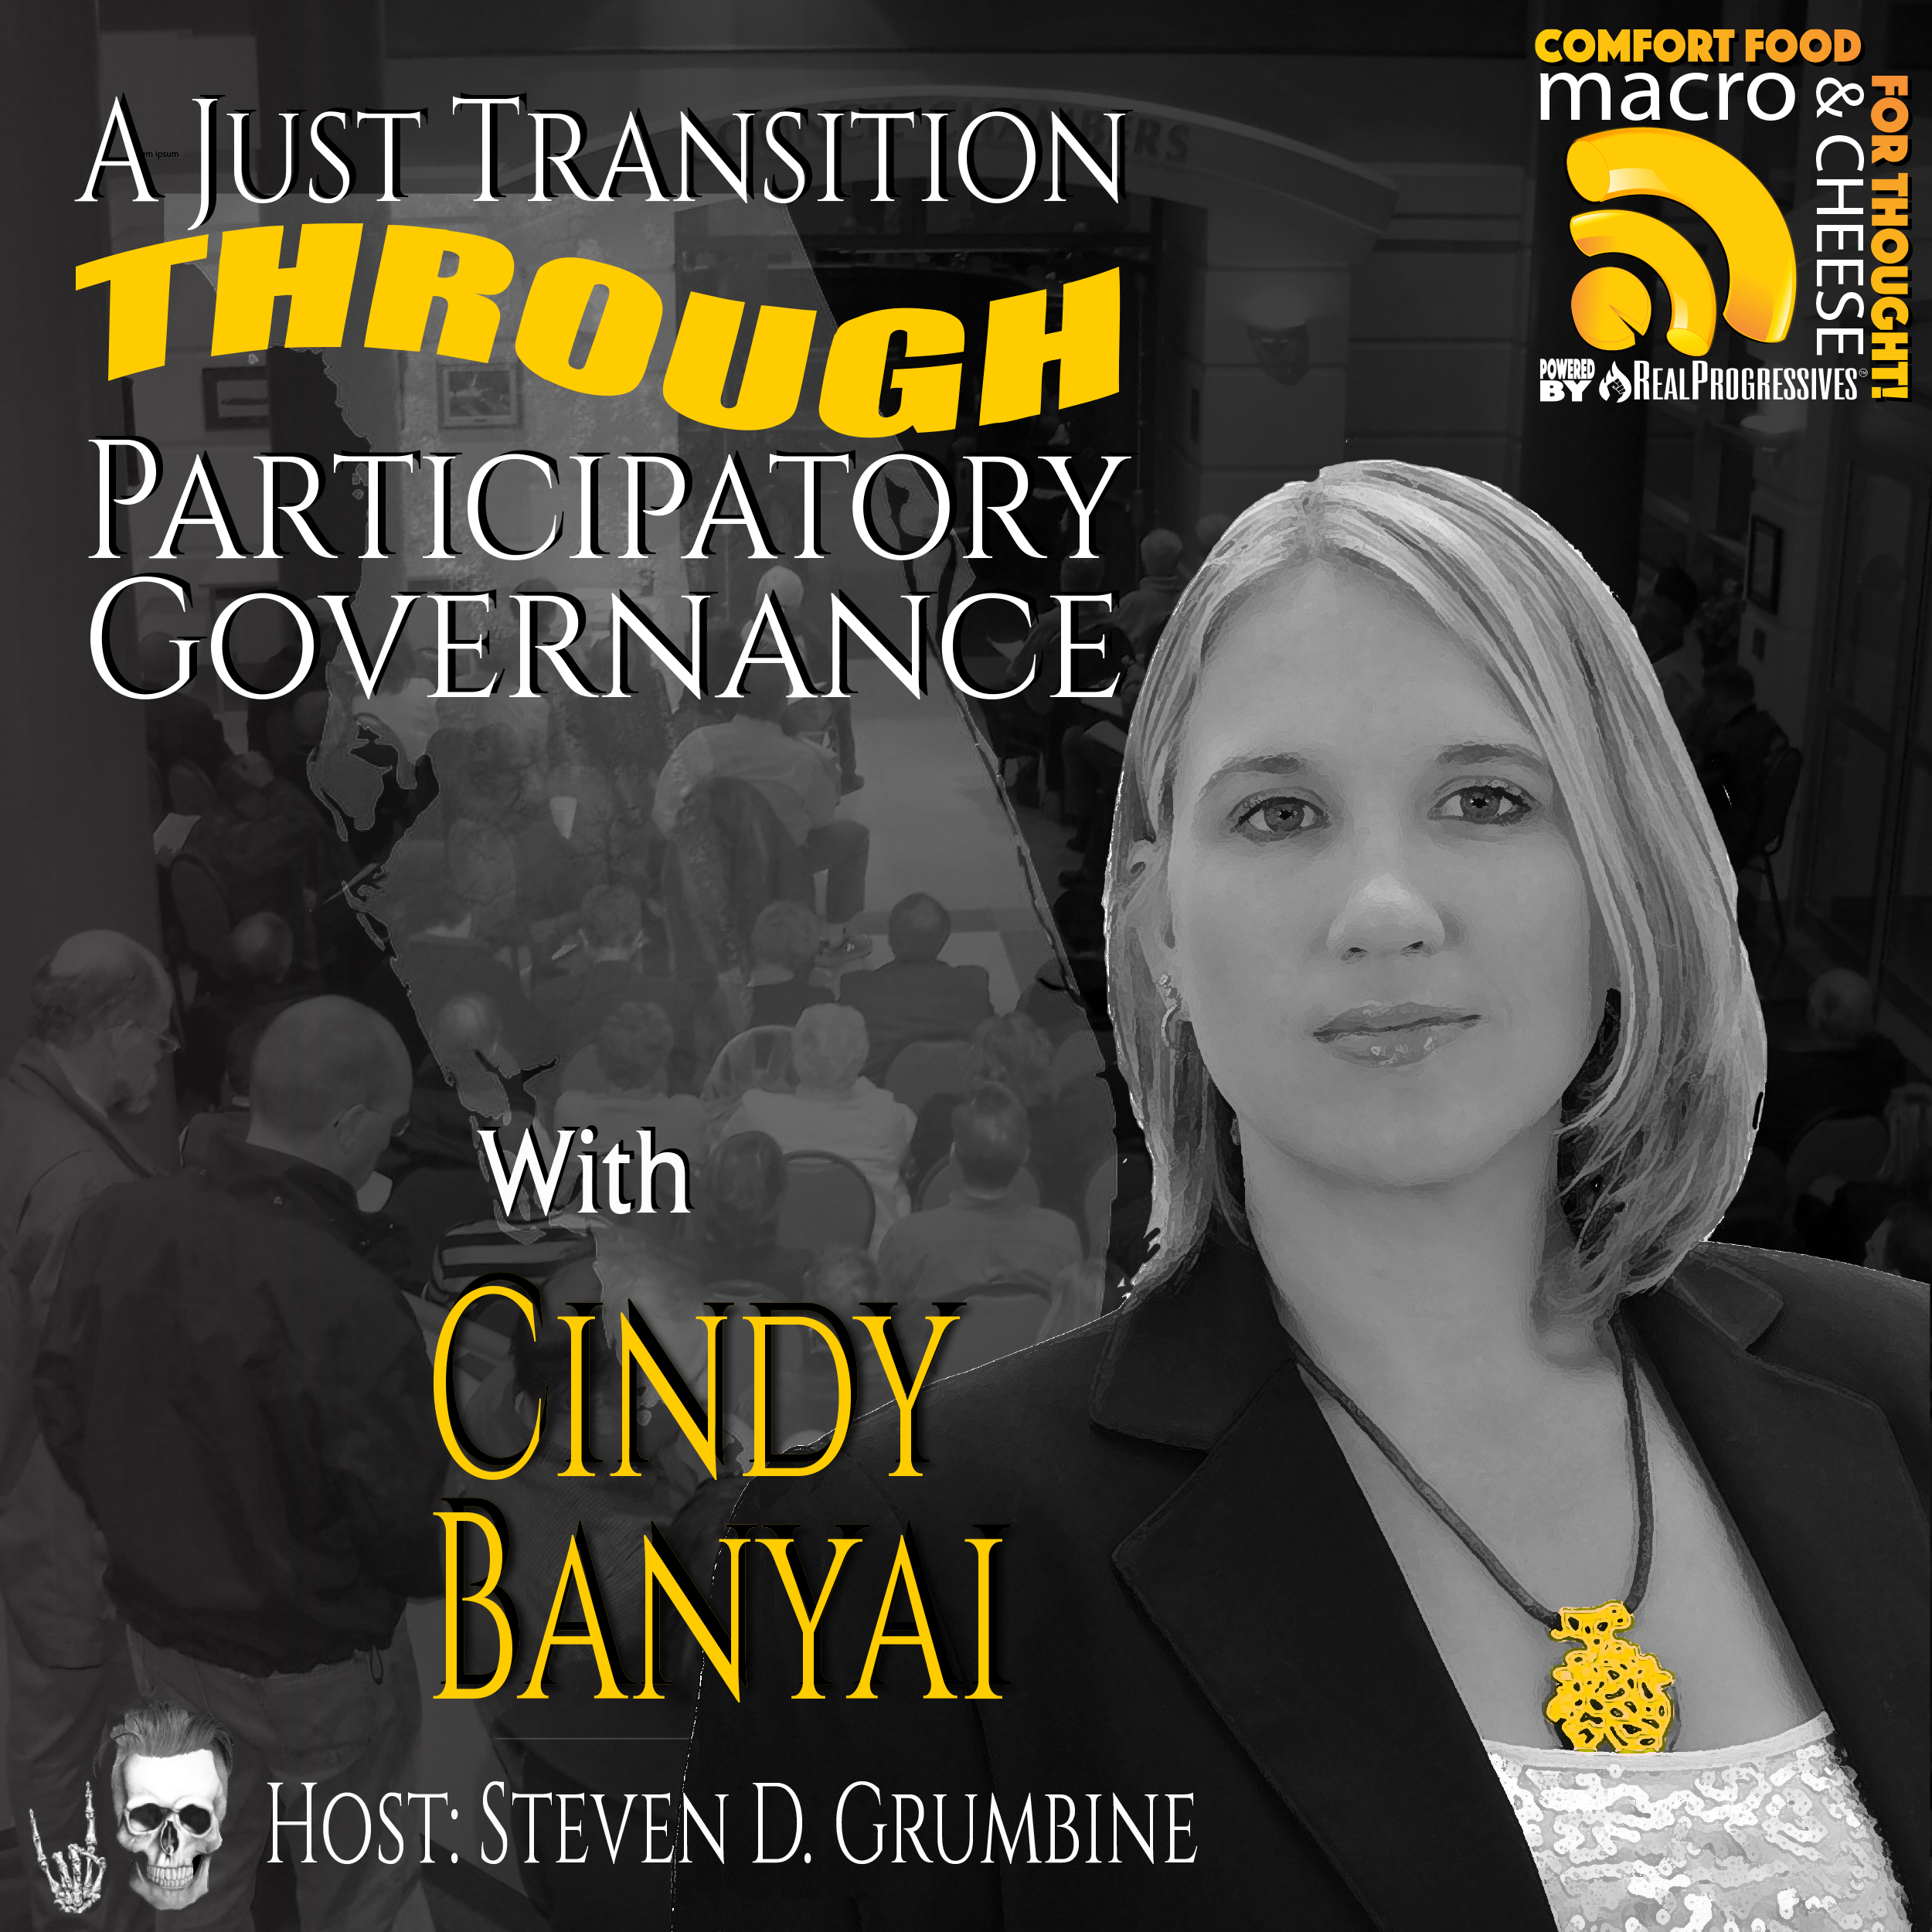 A Just Transition Through Participatory Governance with Cindy Banyai